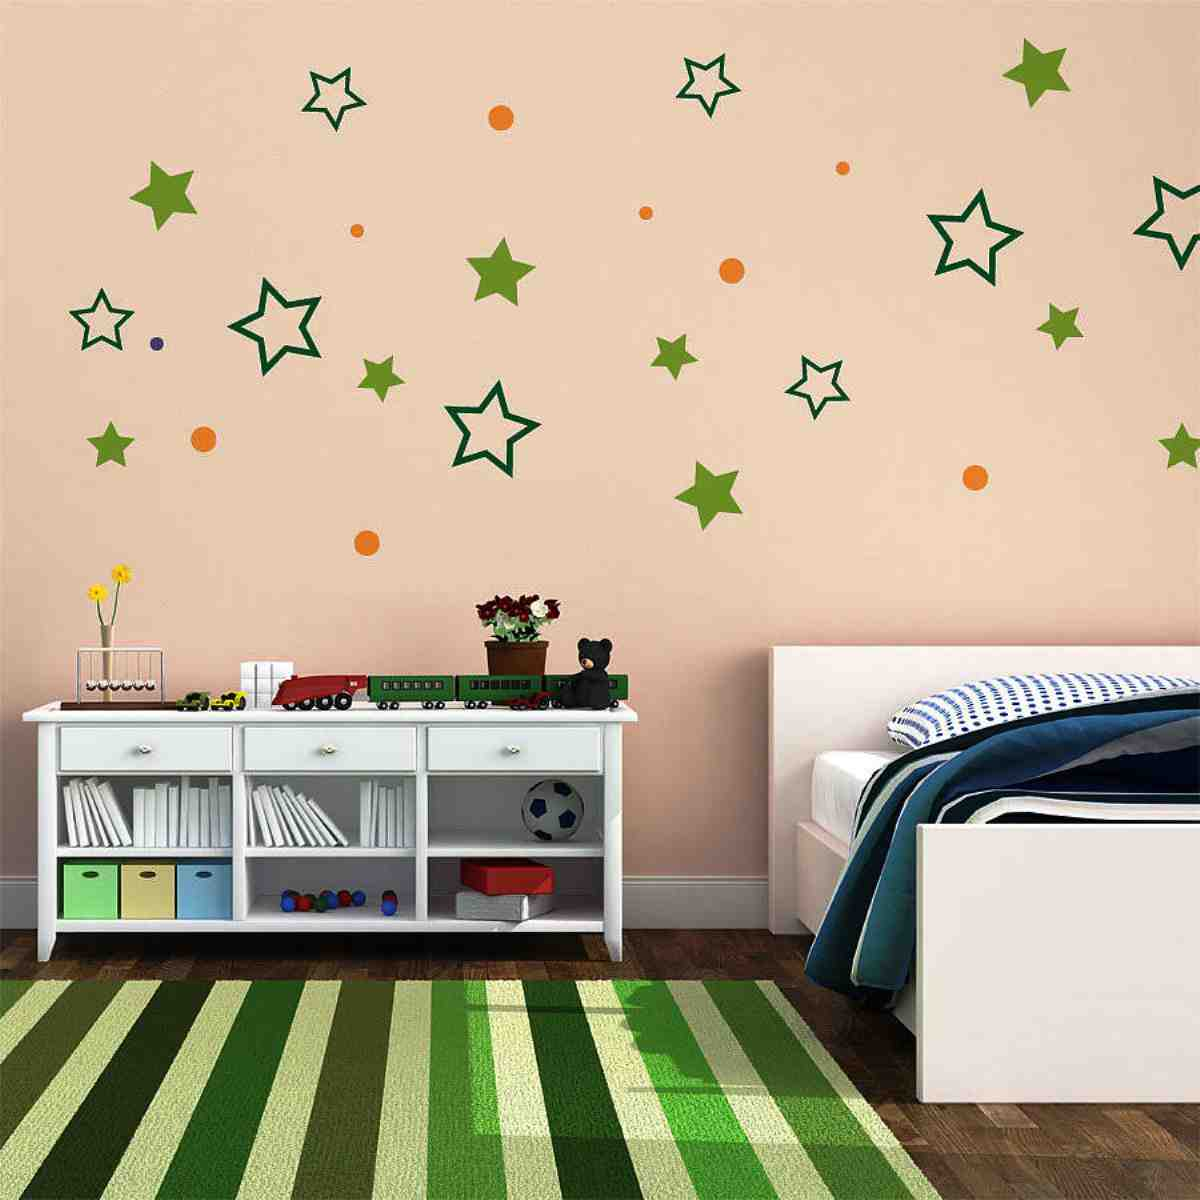 Diy wall decor ideas for bedroom decor ideasdecor ideas for Diy wall mural ideas